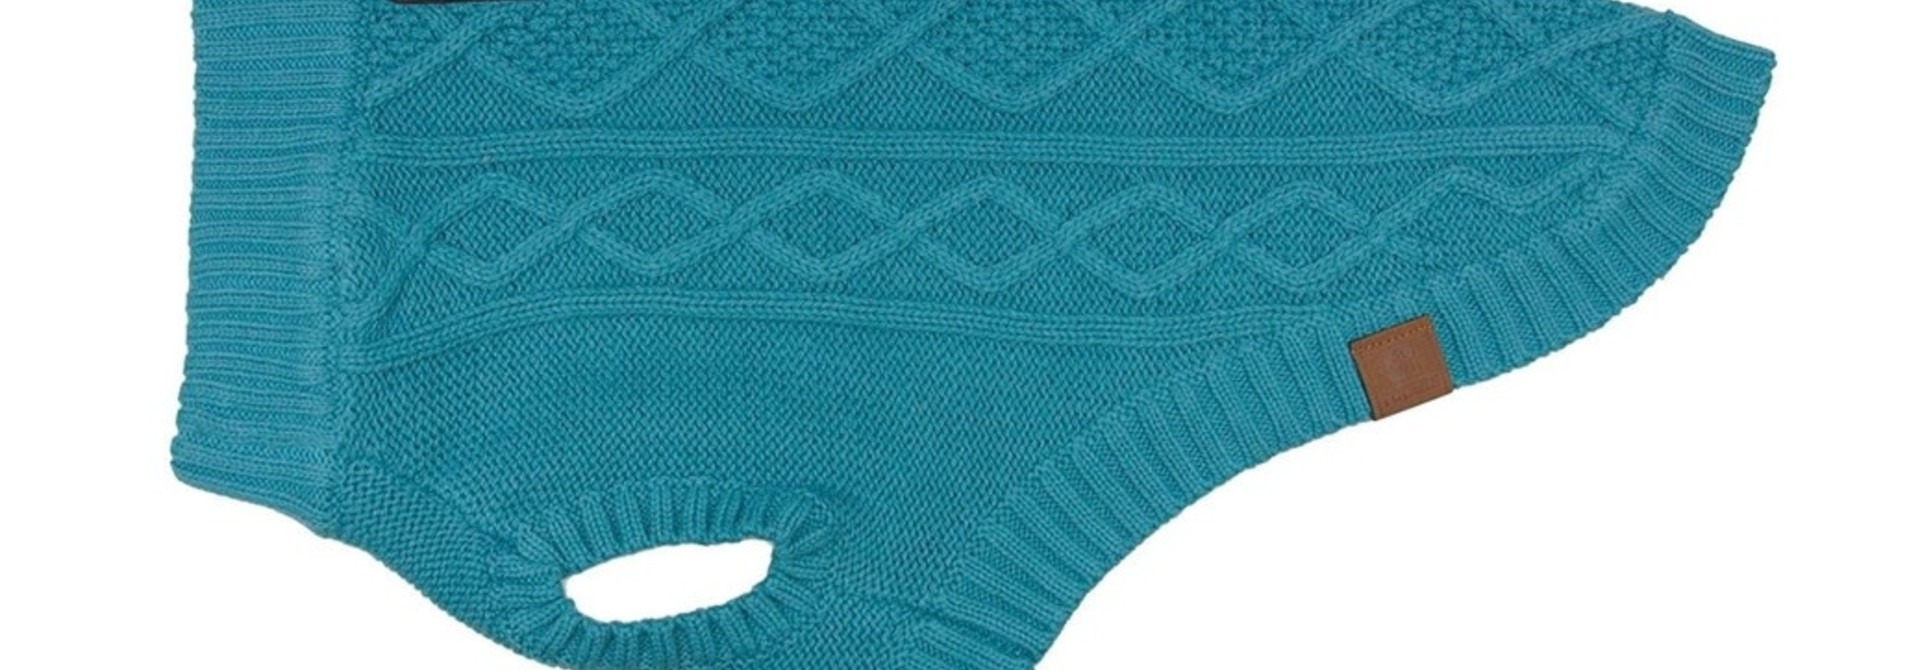 Cable Sweater XL Dark Teal